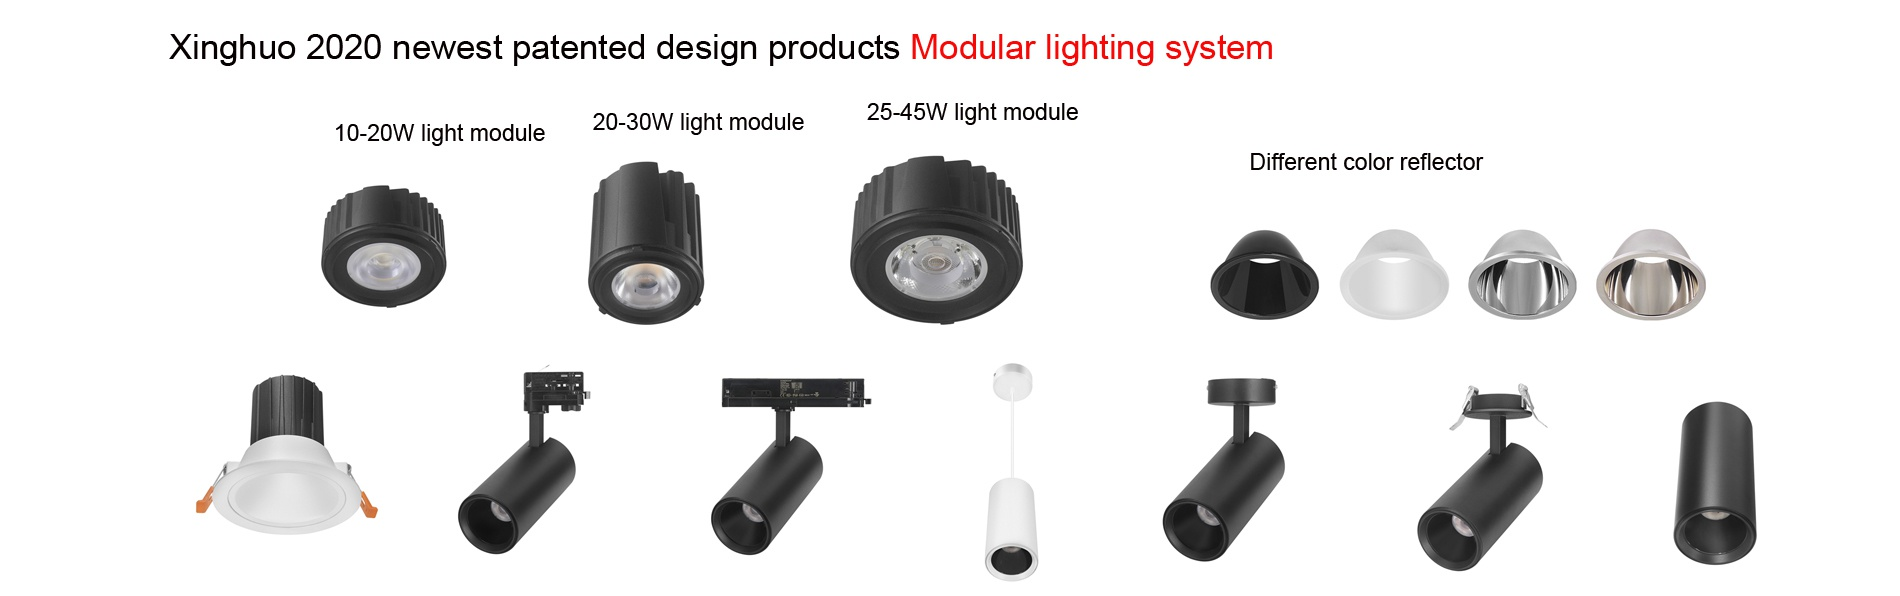 modular led lighting